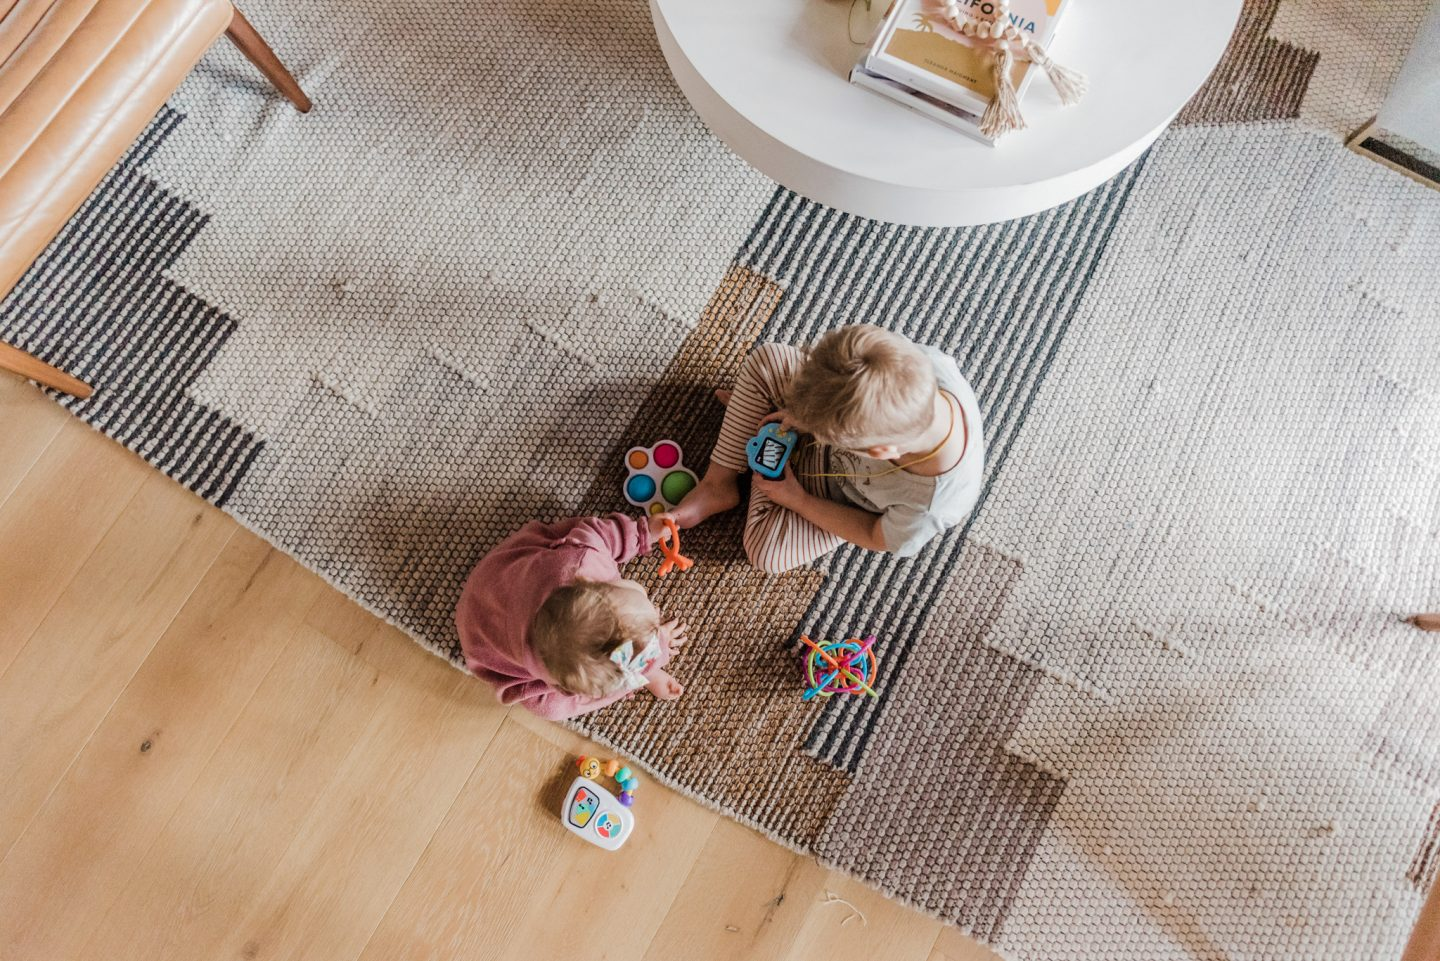 TODDLER EASTER BASKET GIFT IDEAS featured by top San Diego lifestyle blog, Navy Grace | Easter Basket Ideas for Toddlers by popular San Diego lifestyle blog, Navy Grace: image of a two kids sitting on the floor and playing with some toys.